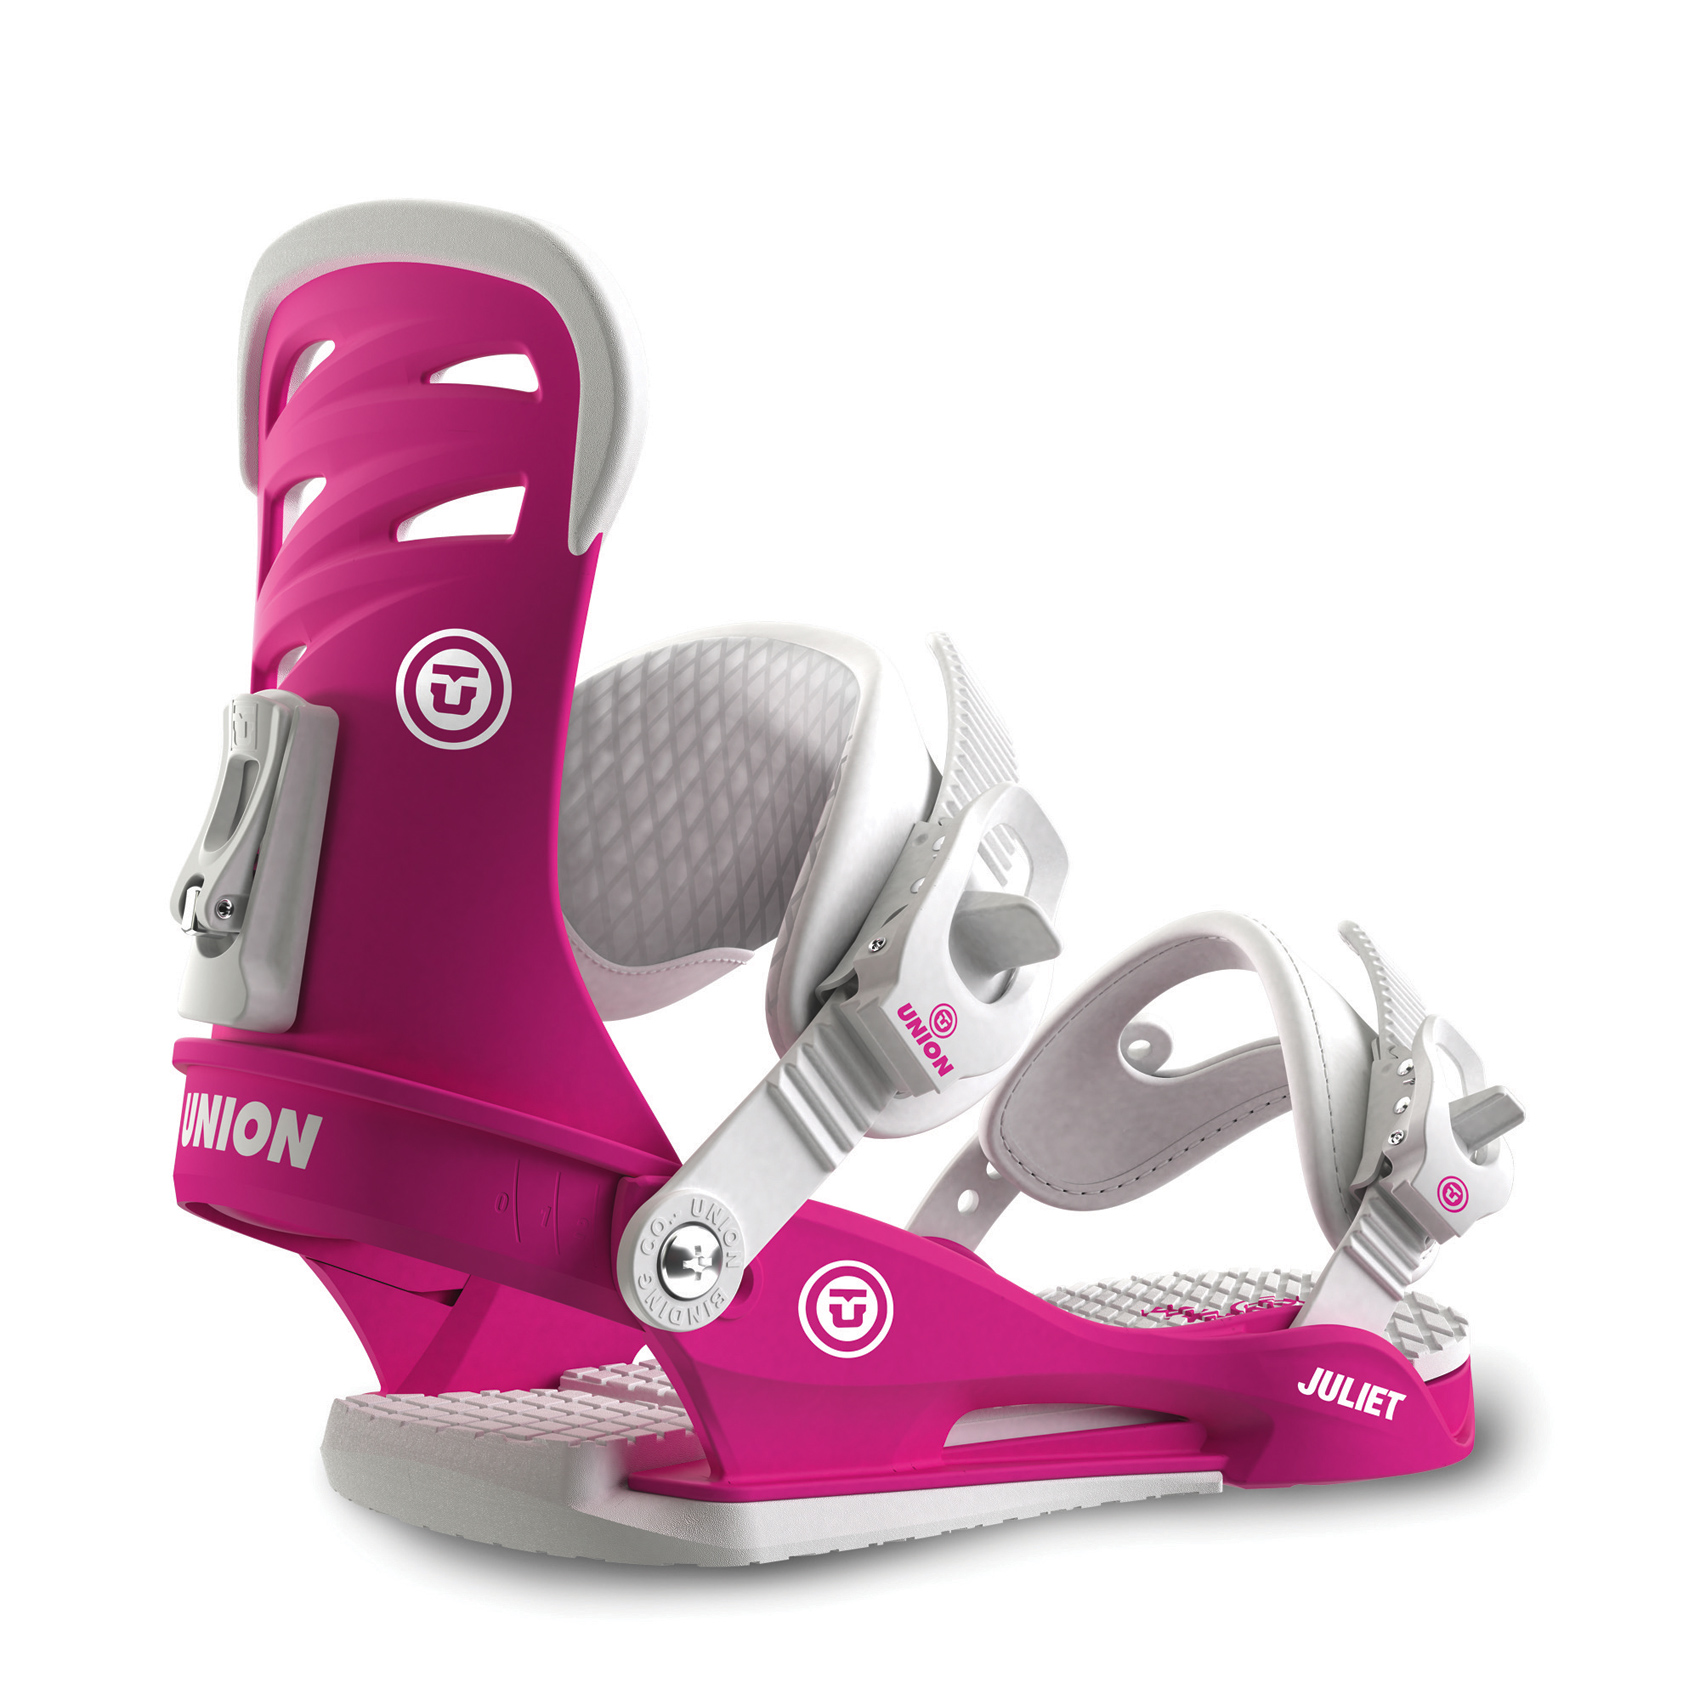 Union Juliet Womens Snowboard Bindings 2016